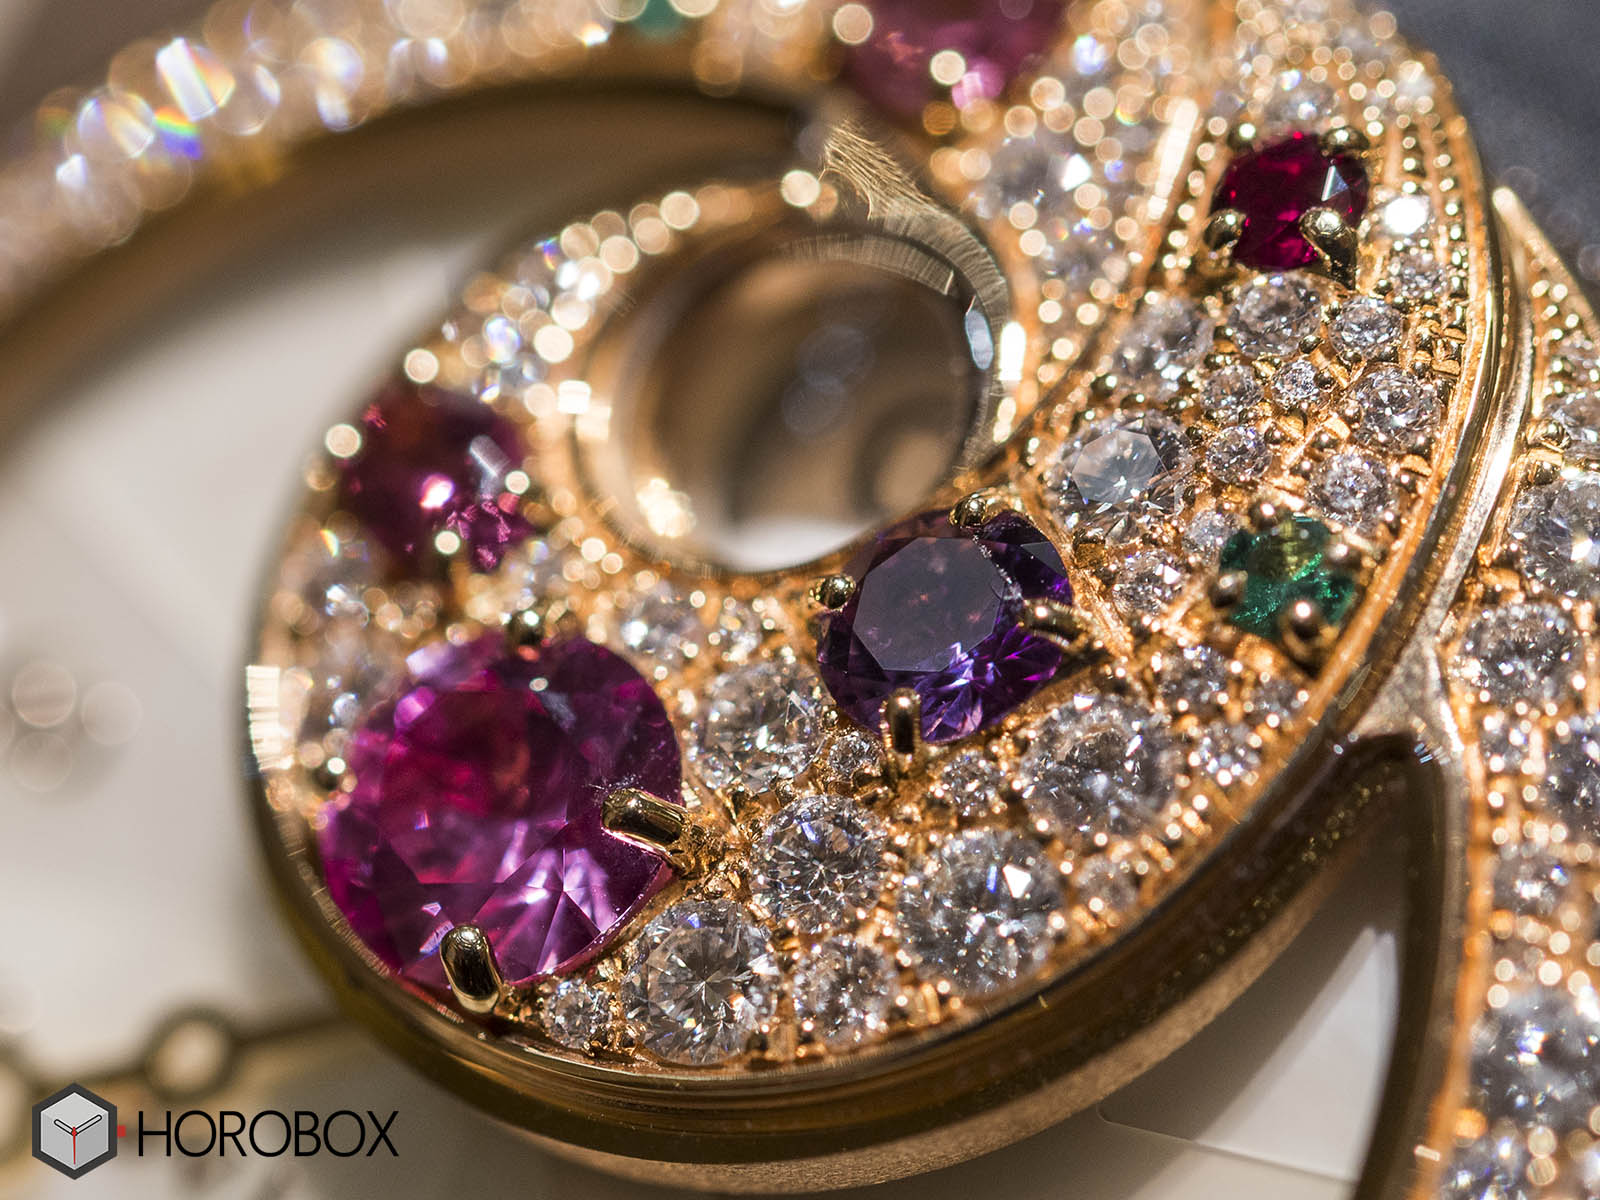 Bulgari-Berries-102007-4.jpg